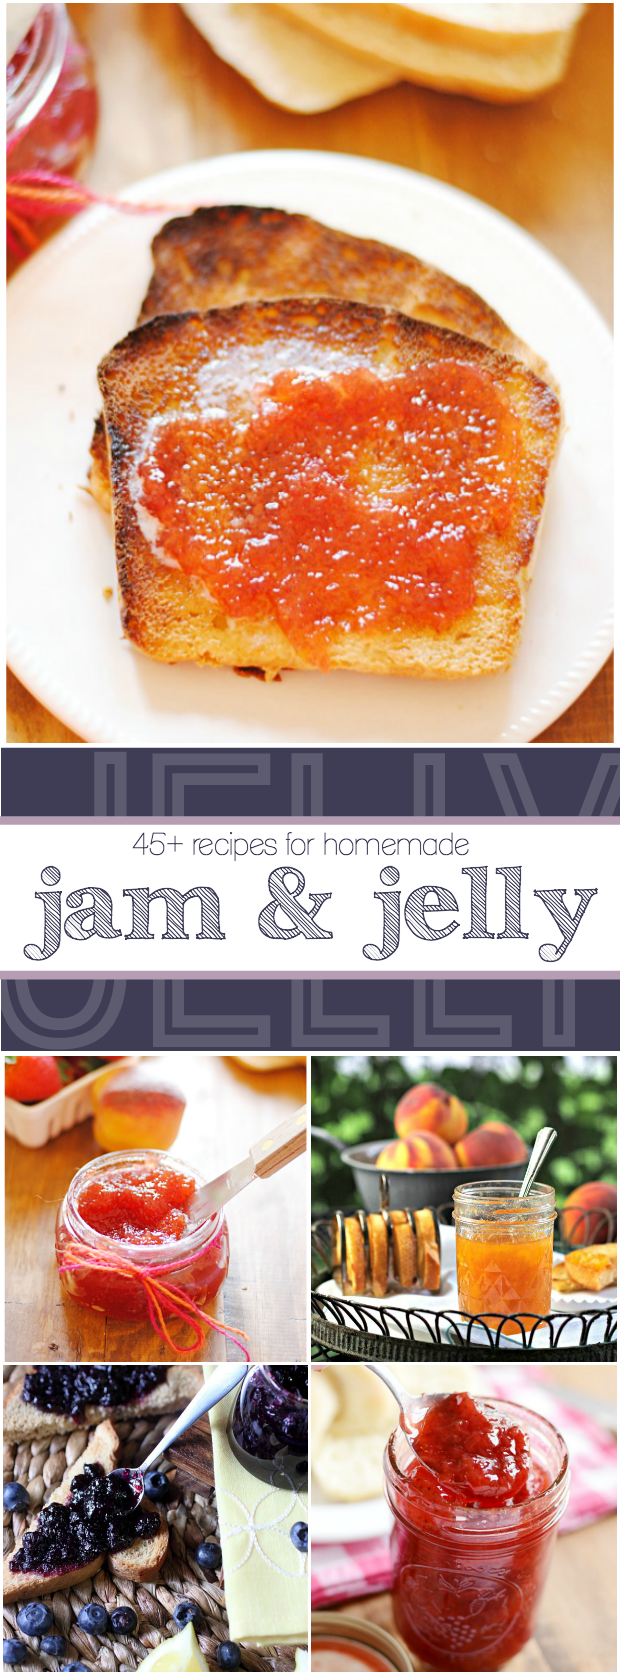 More than 45 recipes for jam and jelly, including my mom's famous strawberry peach jam!